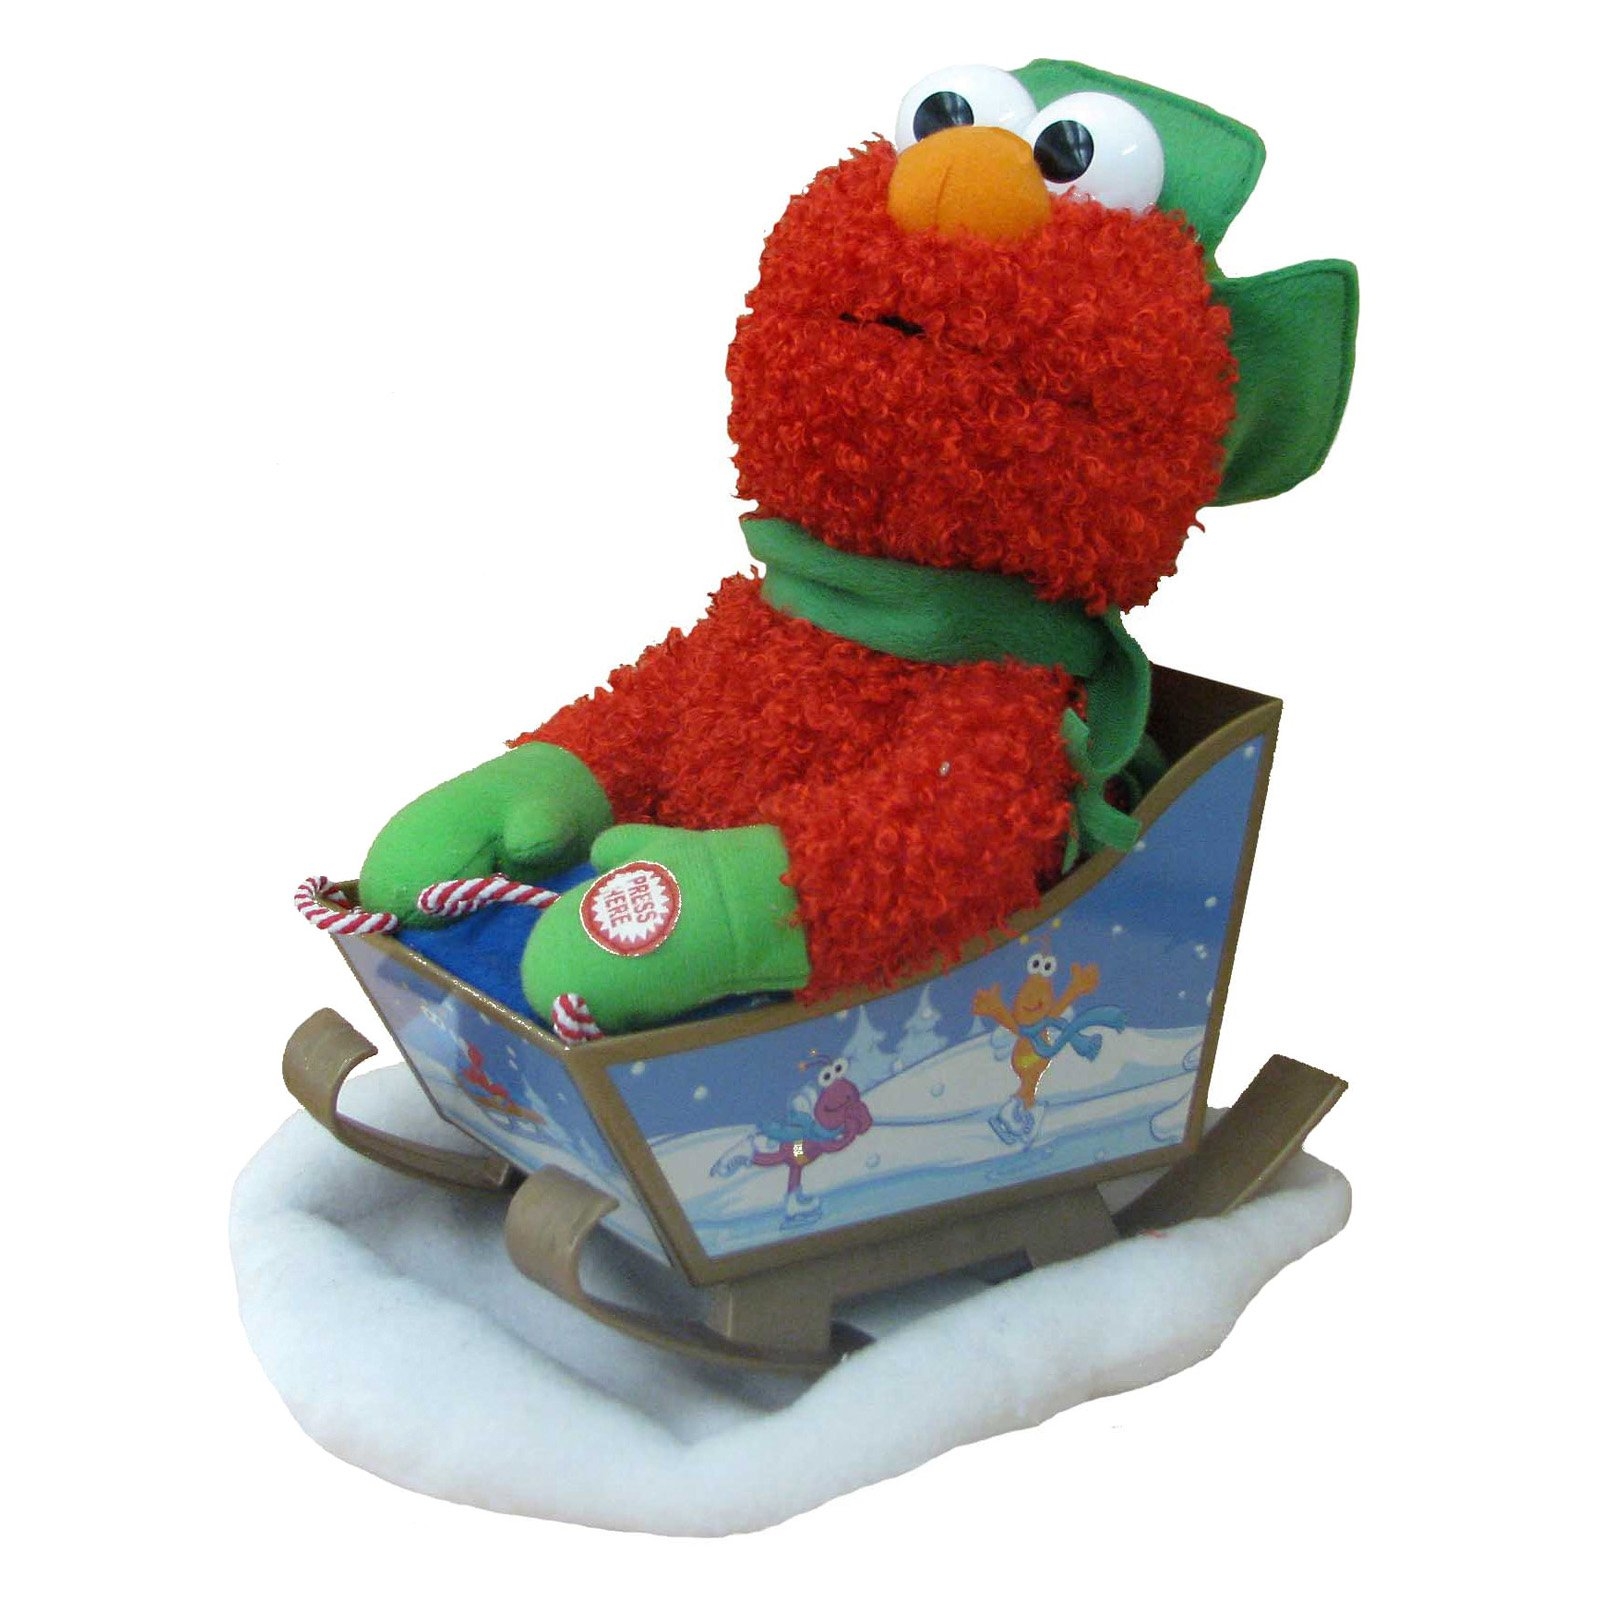 Kurt Adler 10 in. Sesame Street Battery-Operated Singing Animated Elmo with Sled by Kurt Adler